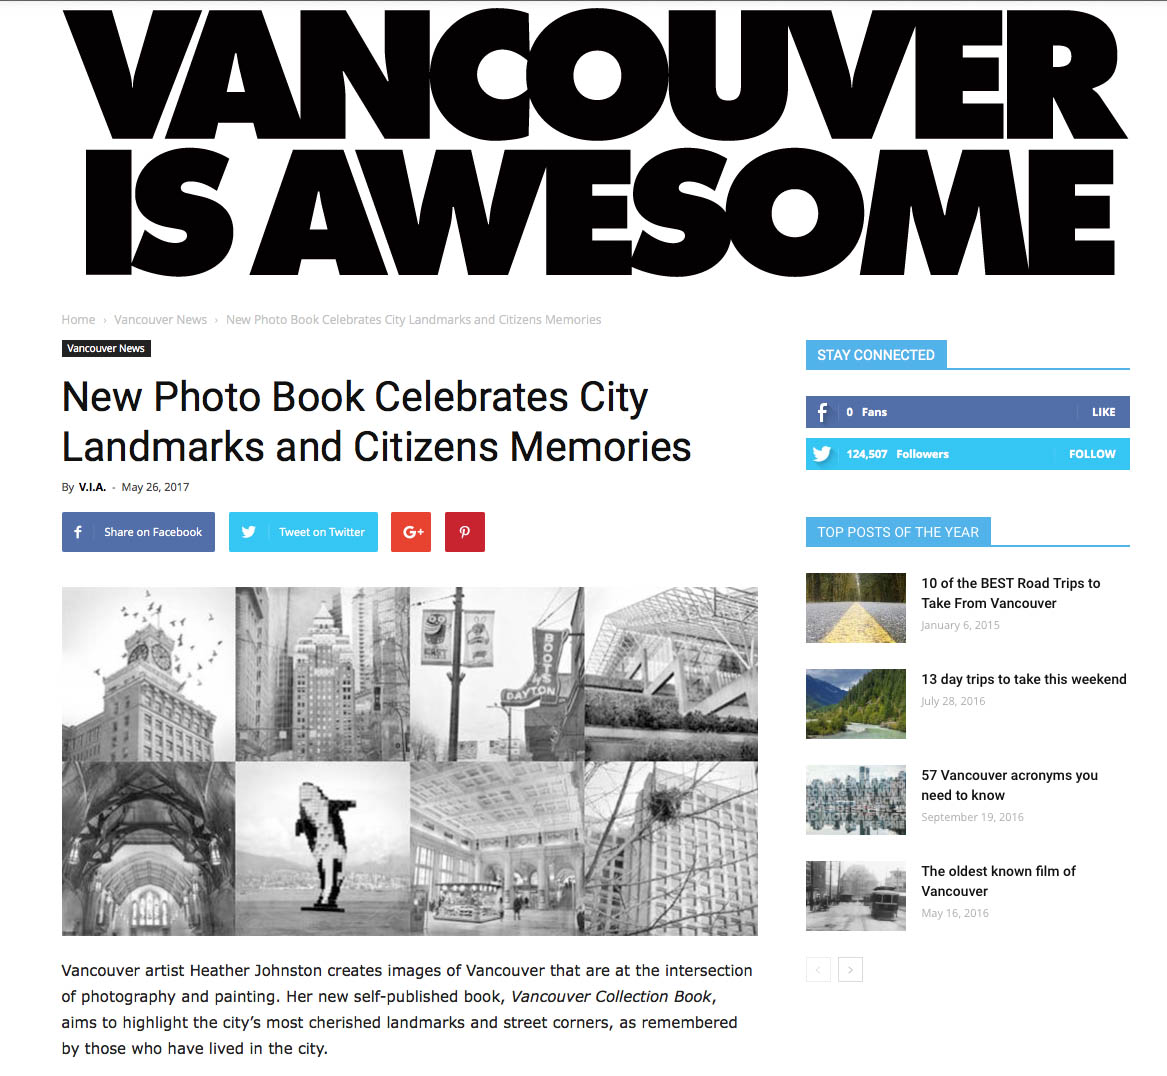 vancouverisawesome